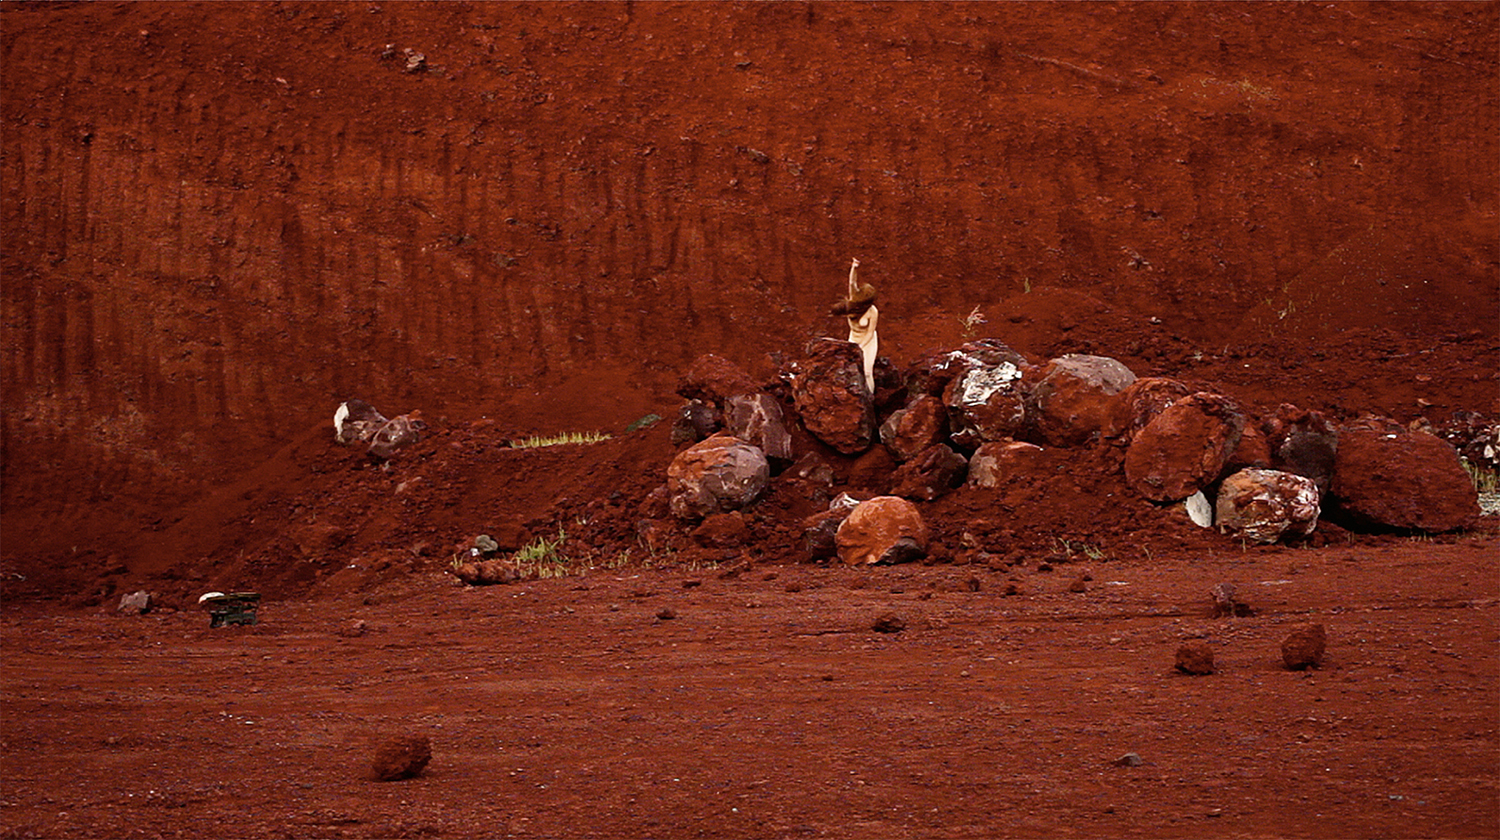 Stories No Longer Untold: Fall, 2013, From the series Four Ages of Woman. Still image. Video by Fatma Bucak. A naked white woman is seen in the distance against a red dry, sandy terrain with large red boulders, she has long ginger hair and is holding an arm up.